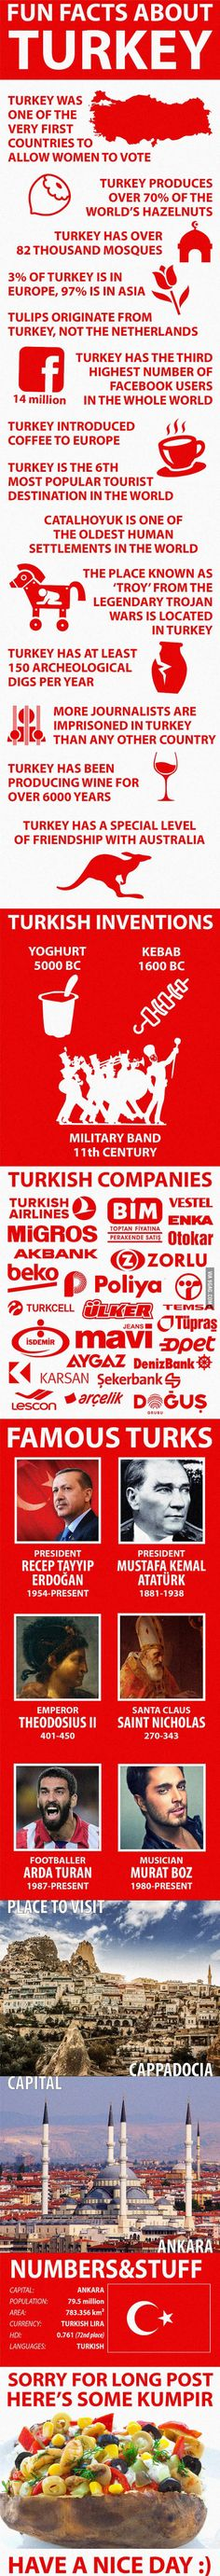 Fun Facts about Turkey